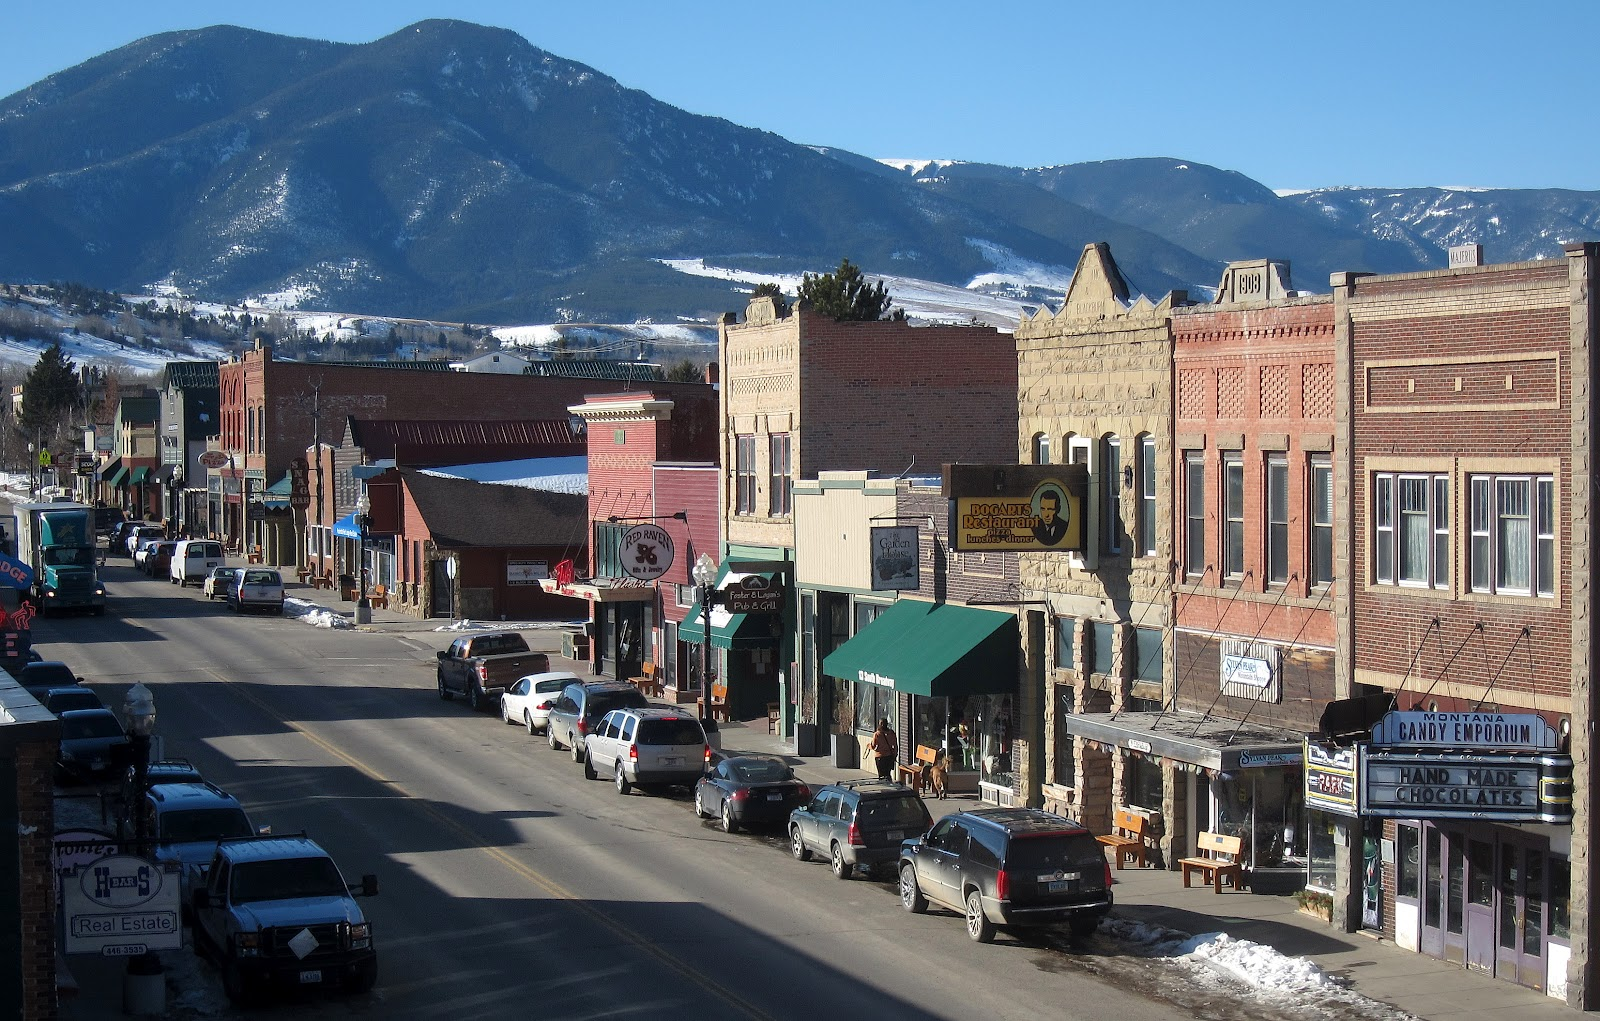 Red Lodge Is A Fun Town To Visit And The Pollard Charming Place Stay We Had Last Visited Here In 2009 For More Photos Of